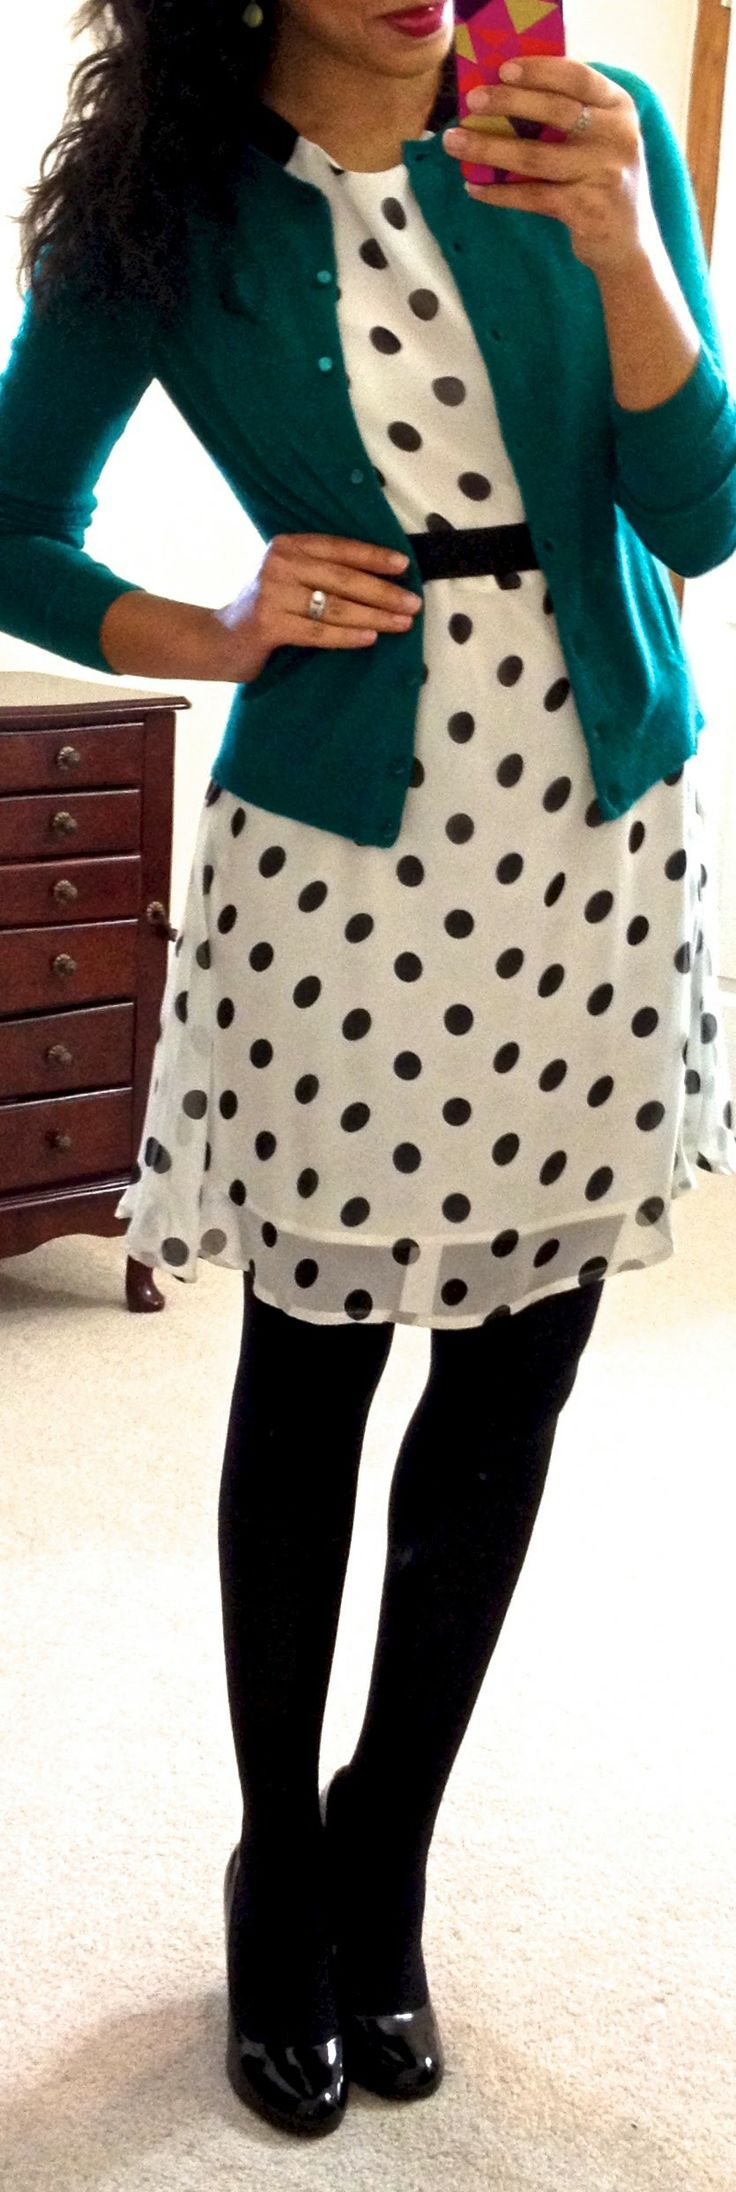 Need Black And White Dress Colored Cardigan Black Tights